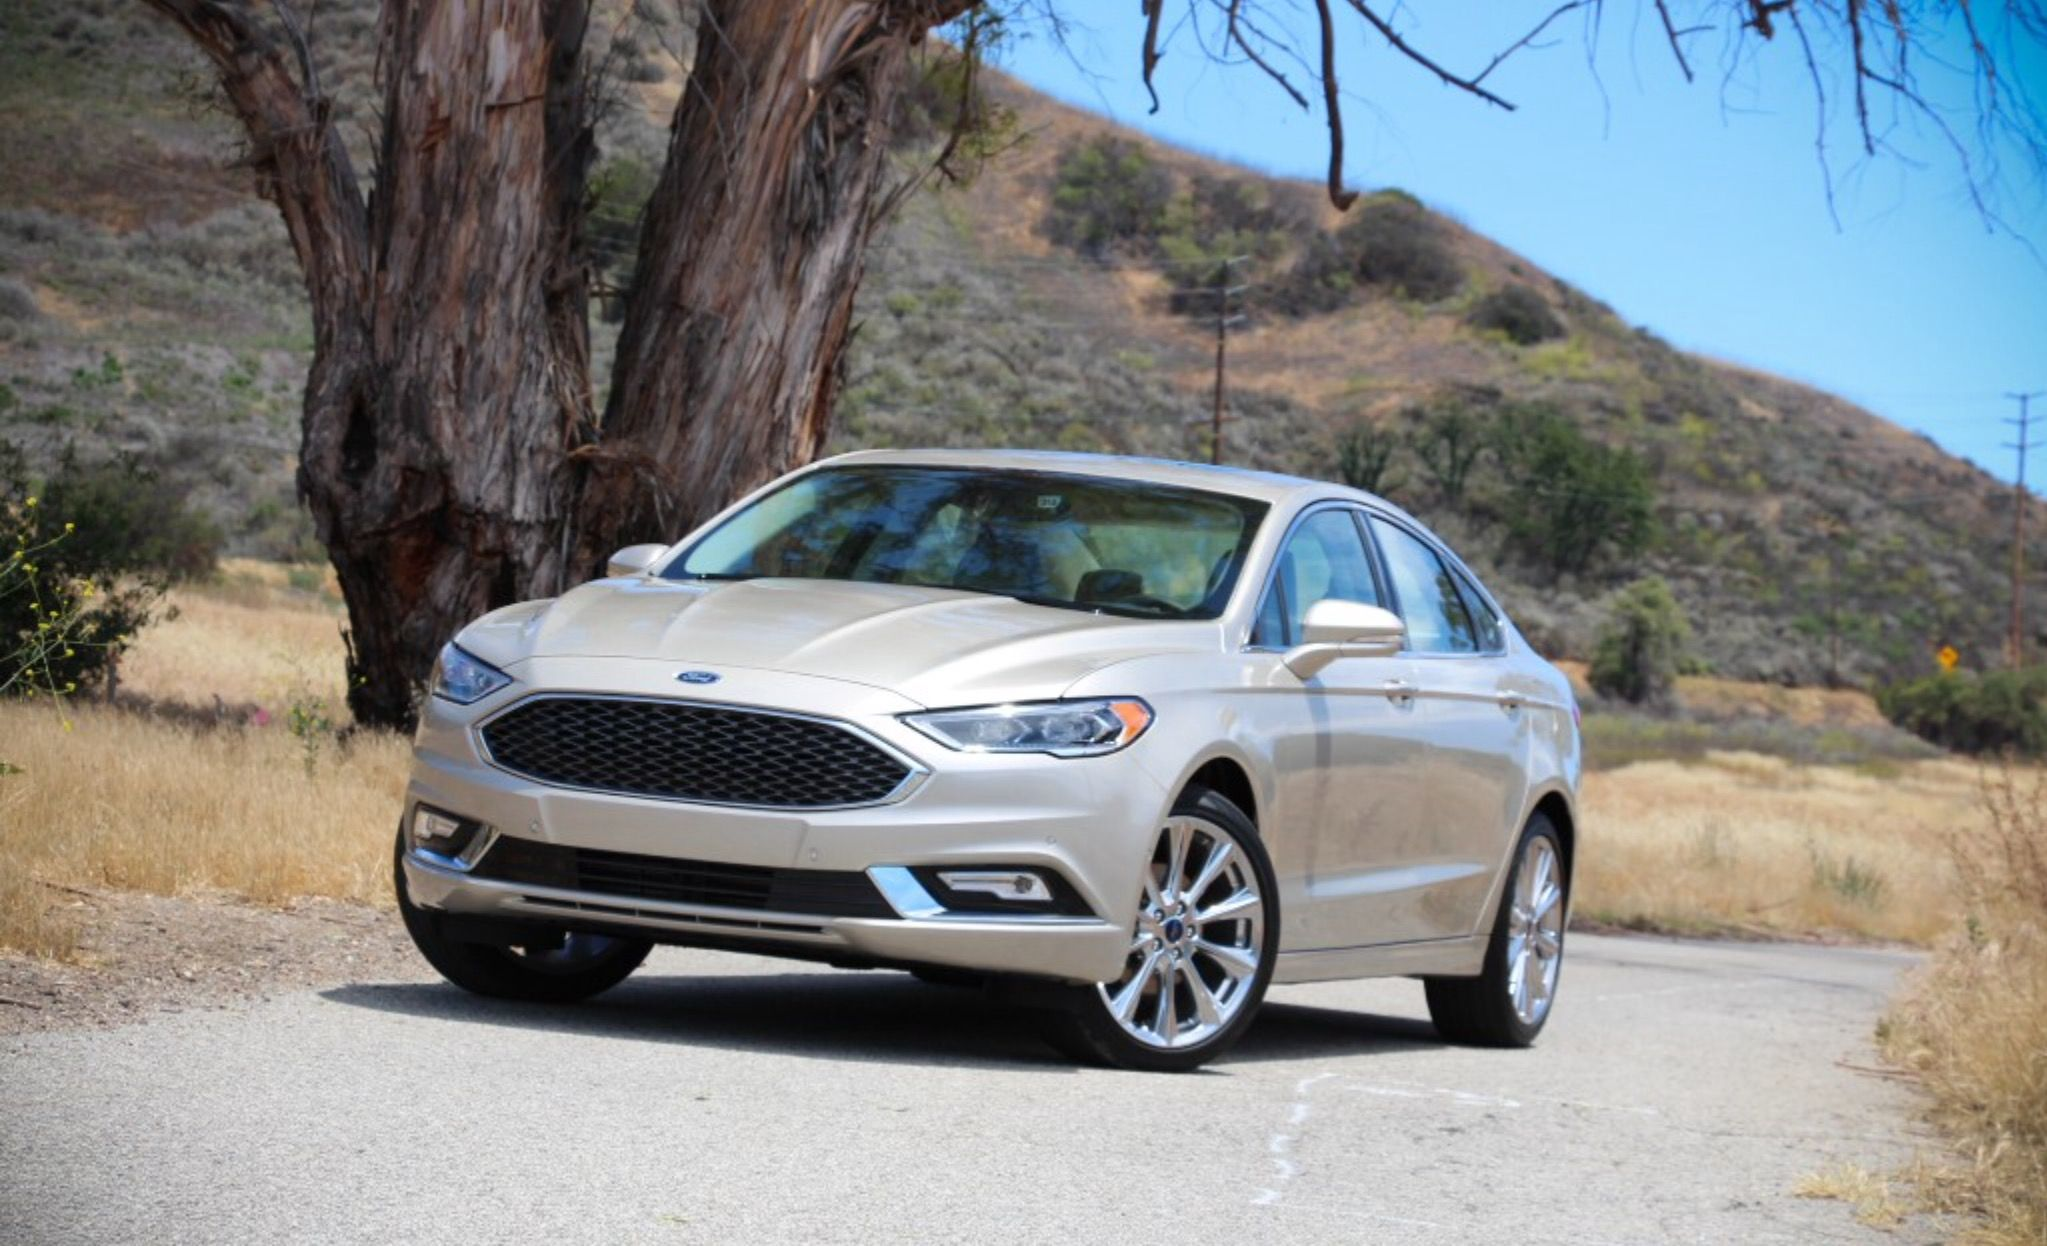 platinum groovecar gold sedan fusion hybrid s white large research composite ford